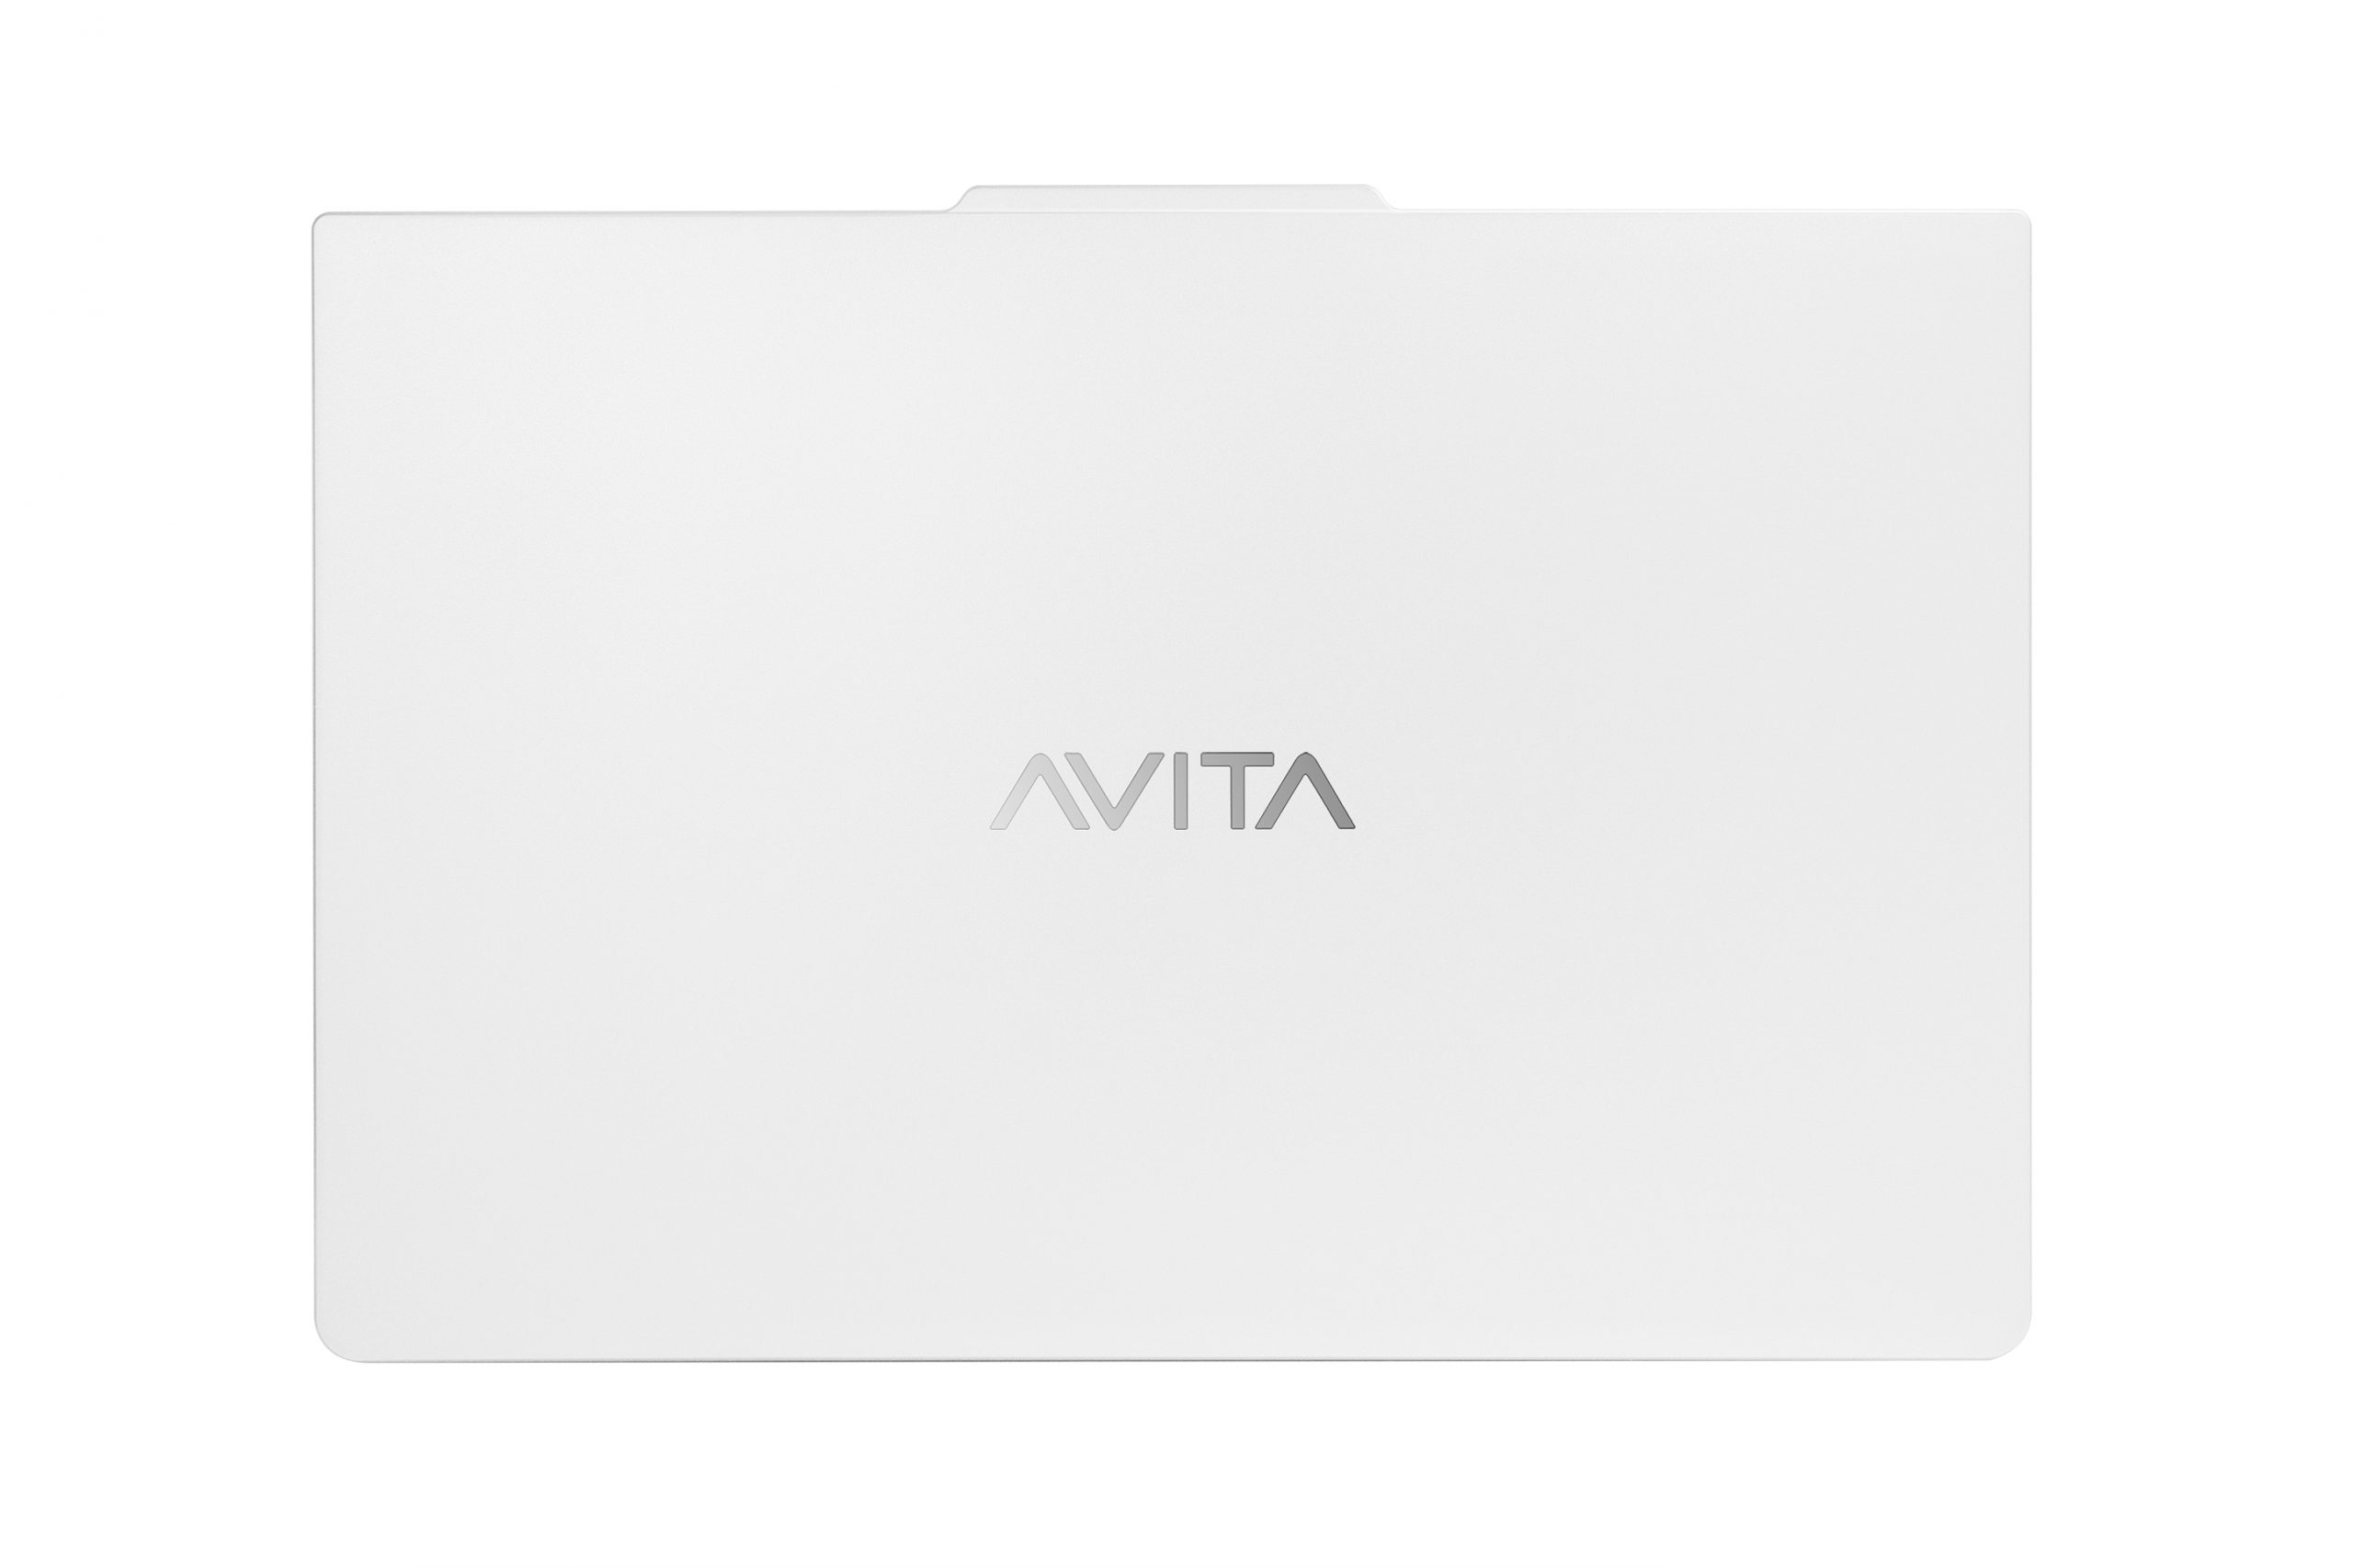 https://t2qwifi.com/wp-content/uploads/2020/07/avita_laptop_2020_angle8_0023_high_pearl-white-scaled.jpg